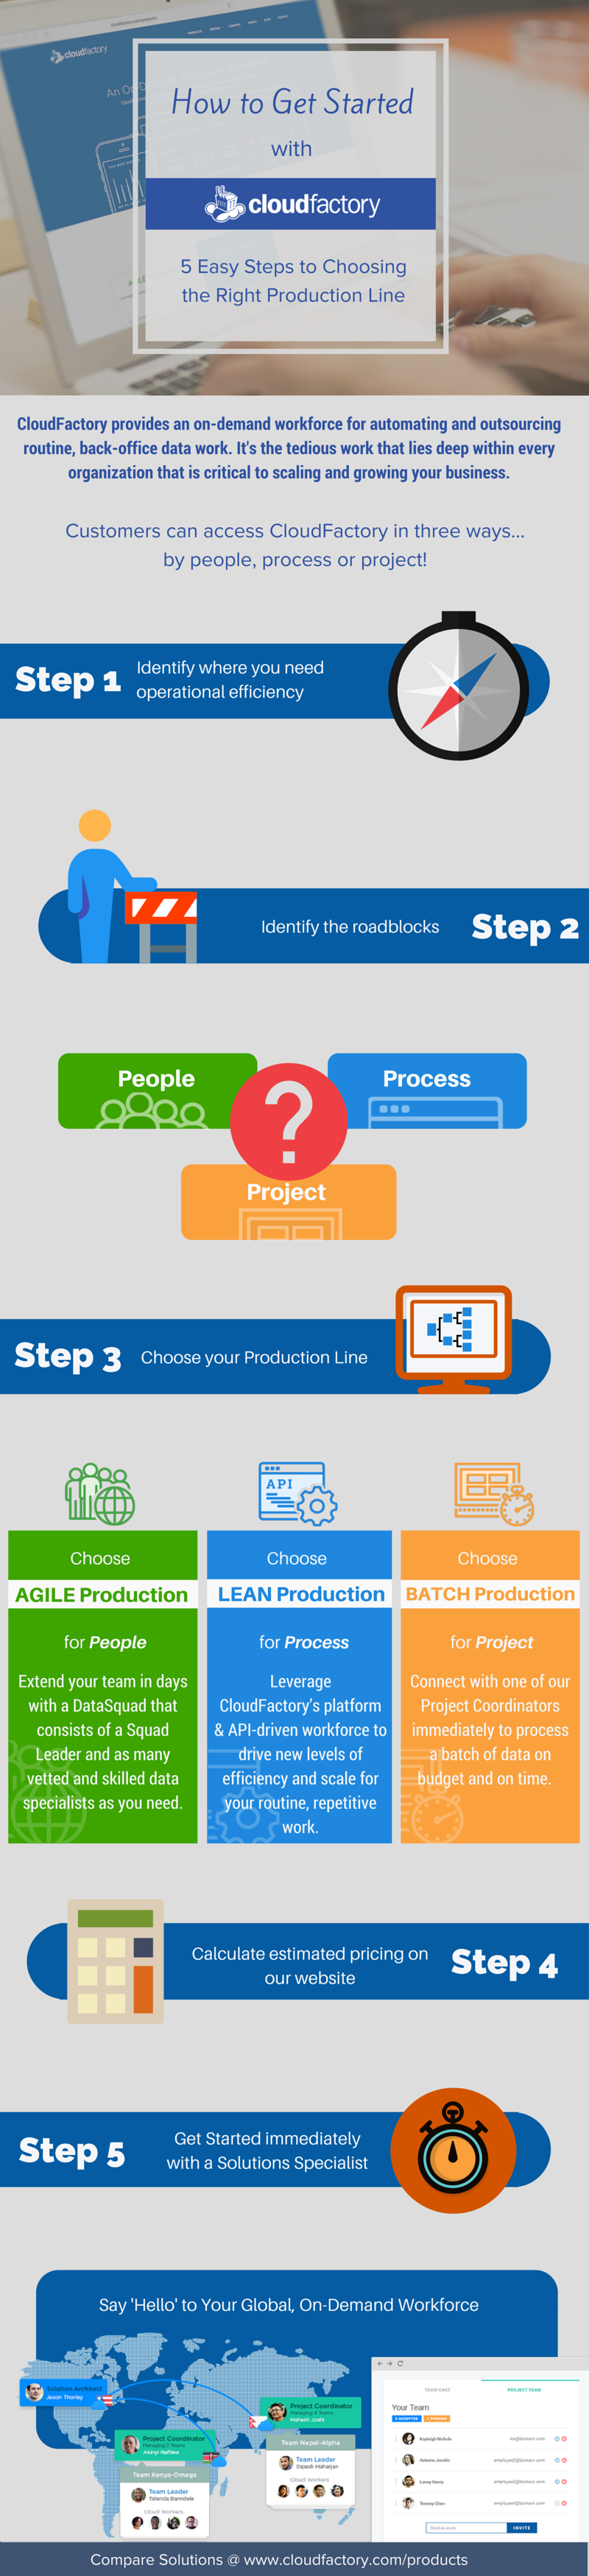 How to Get Started with CloudFactory